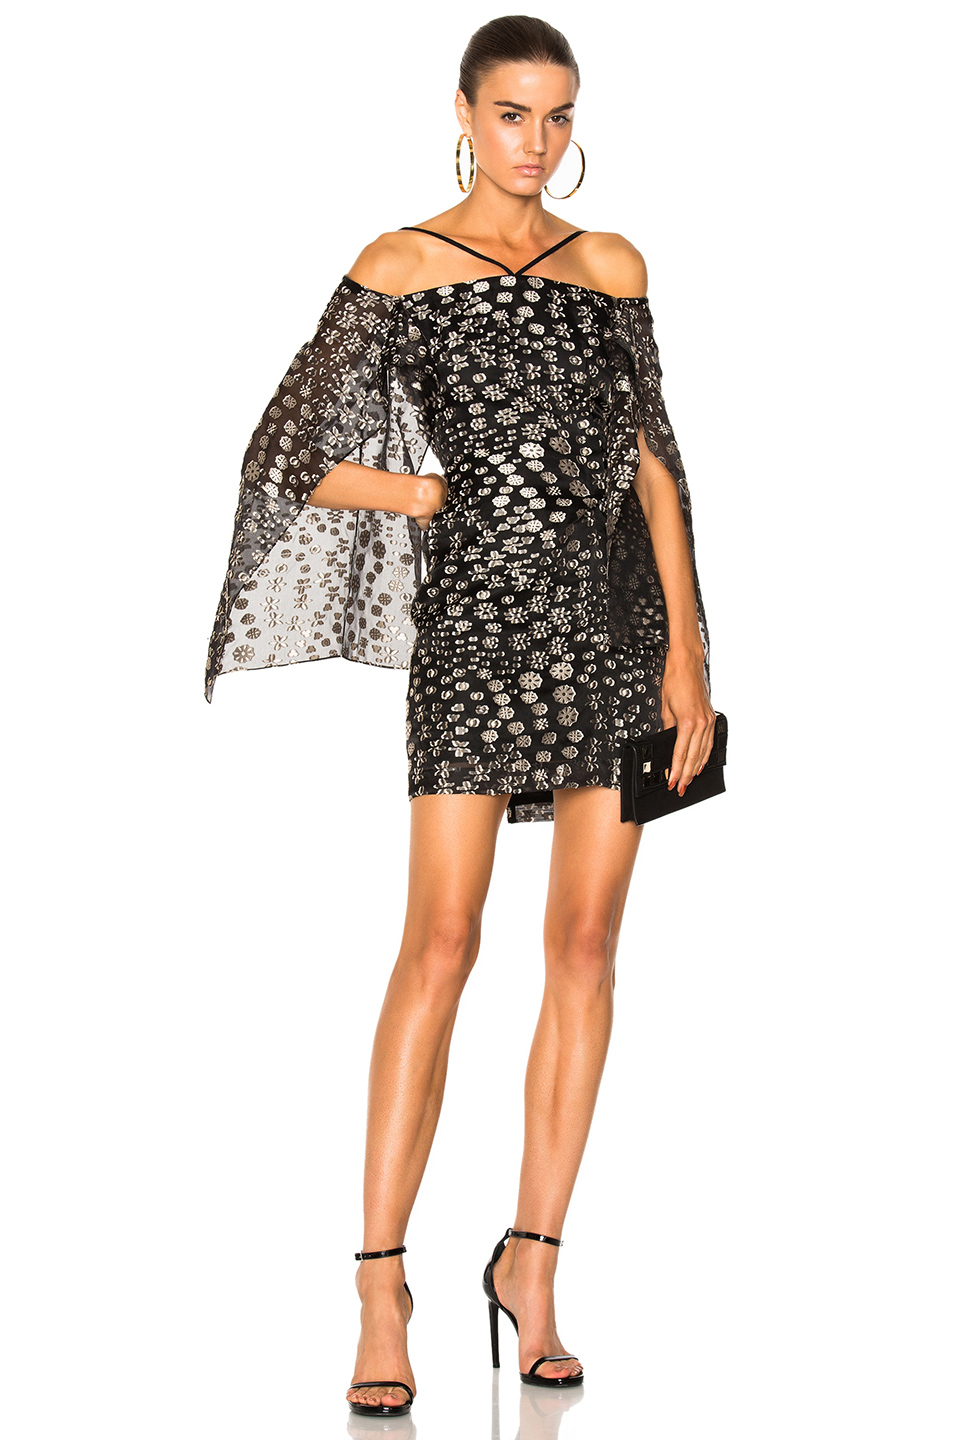 Roland Mouret Meedstead Blossom Fils Coupe Mini Dress in Abstract,Black,Neutrals